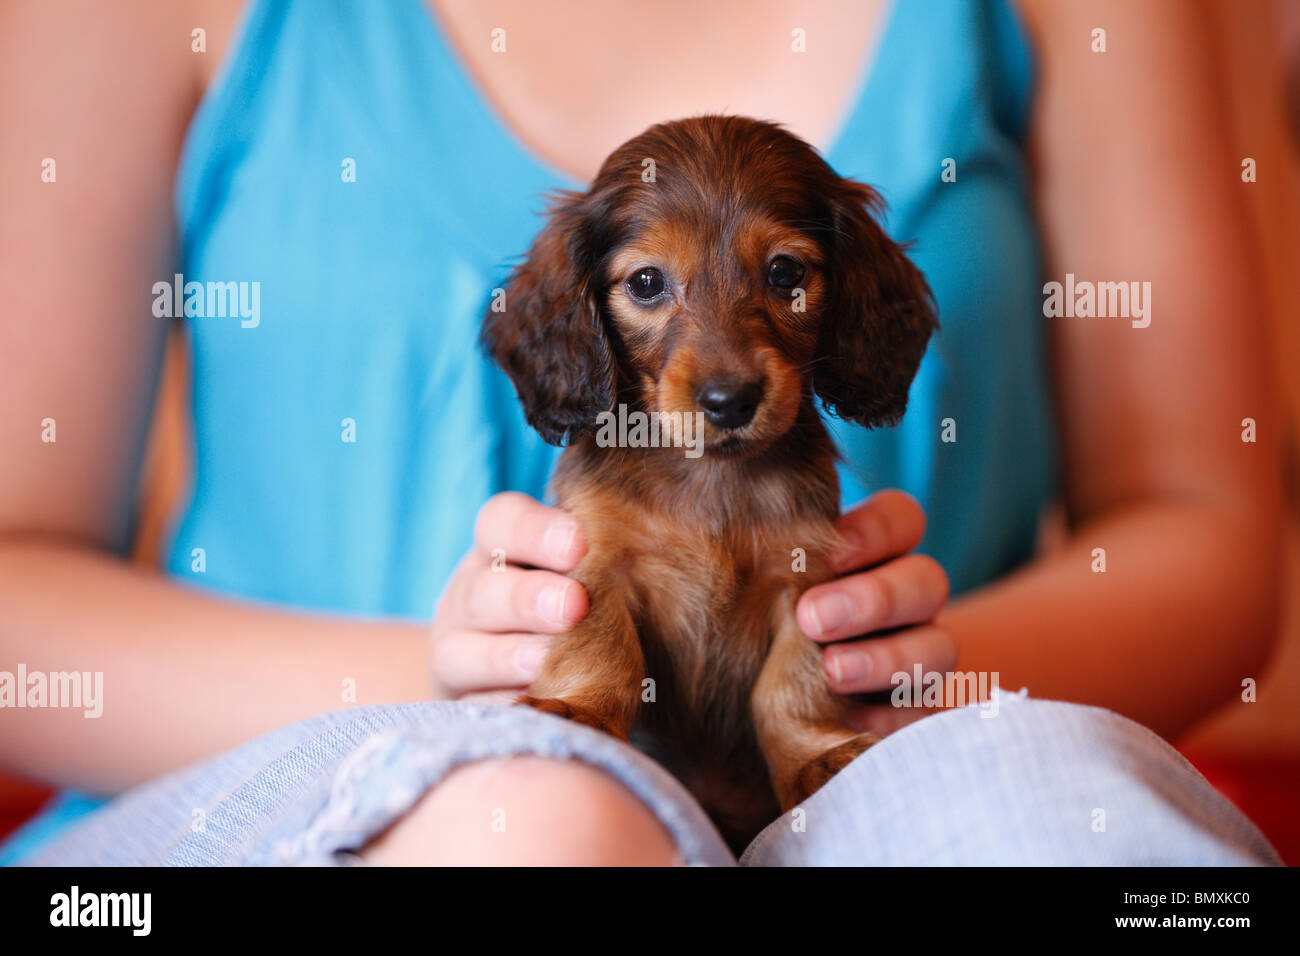 Miniature Dachshund Sausage Dog Puppy Stock Photos & Miniature ...